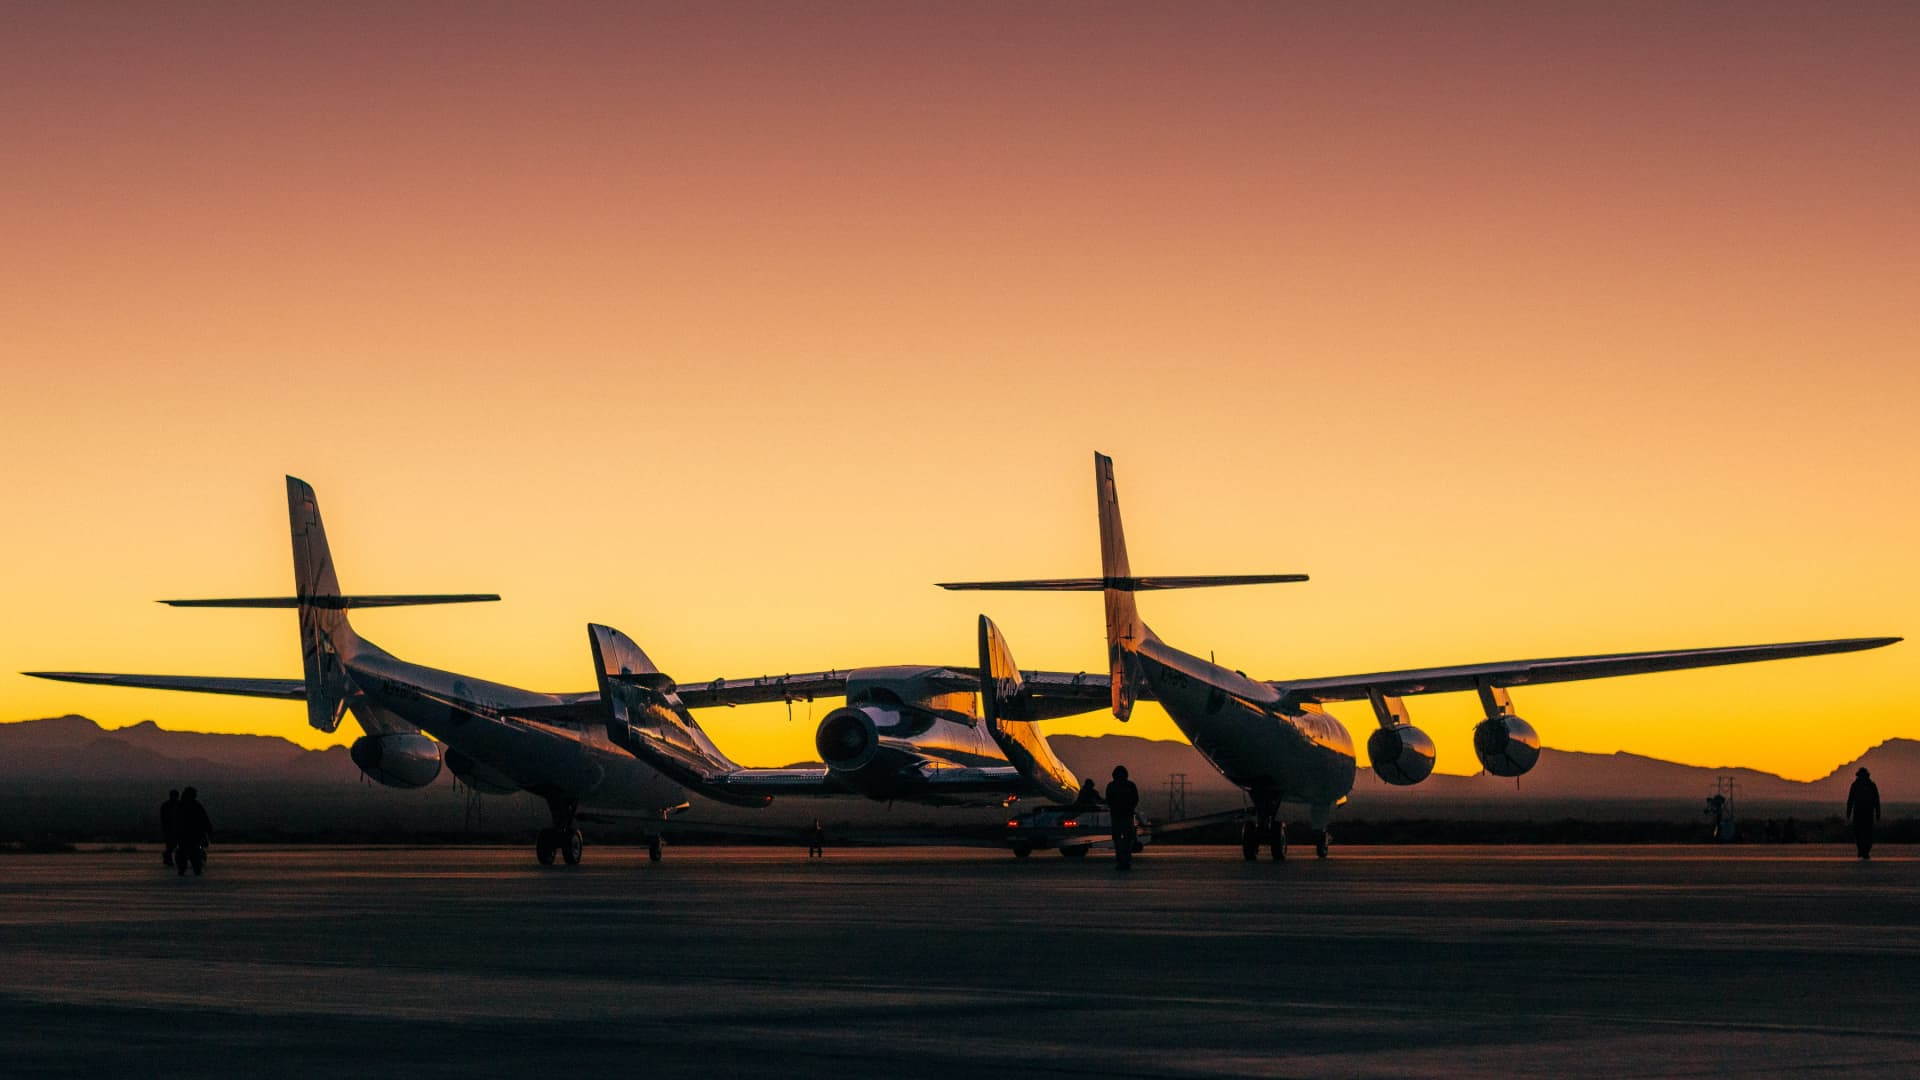 Virgin Galactic's carrier jet and spacecraft prepare to takeoff from Spaceport America in New Mexico on Dec. 12, 2020.